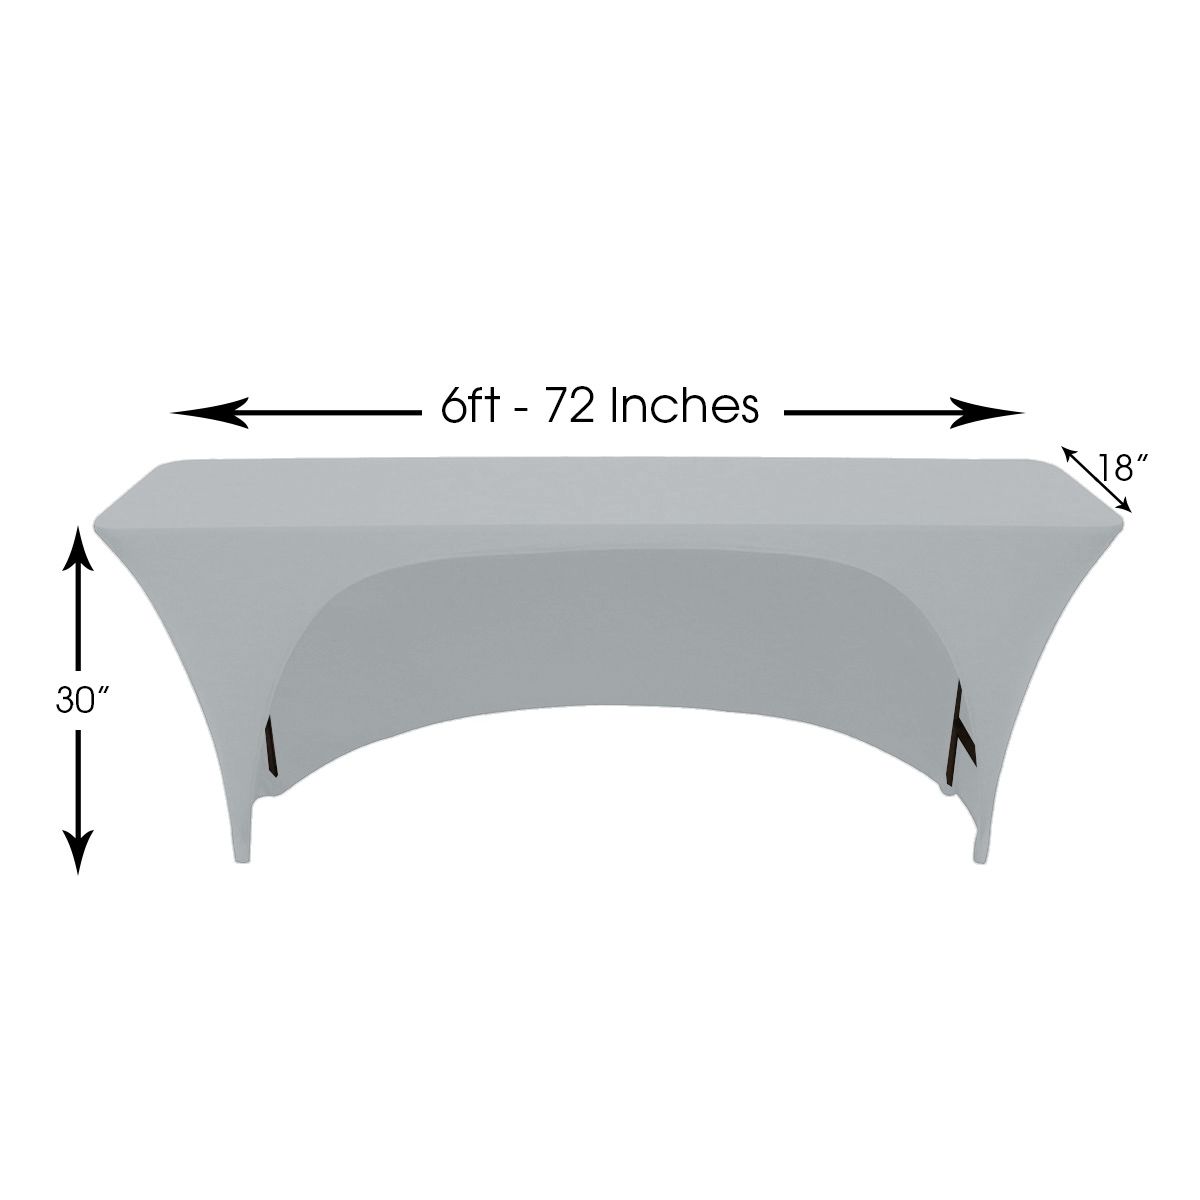 stretch-spandex-6ft-18-inches-open-back-rectangular-table-covers-silver-dimensions.jpg